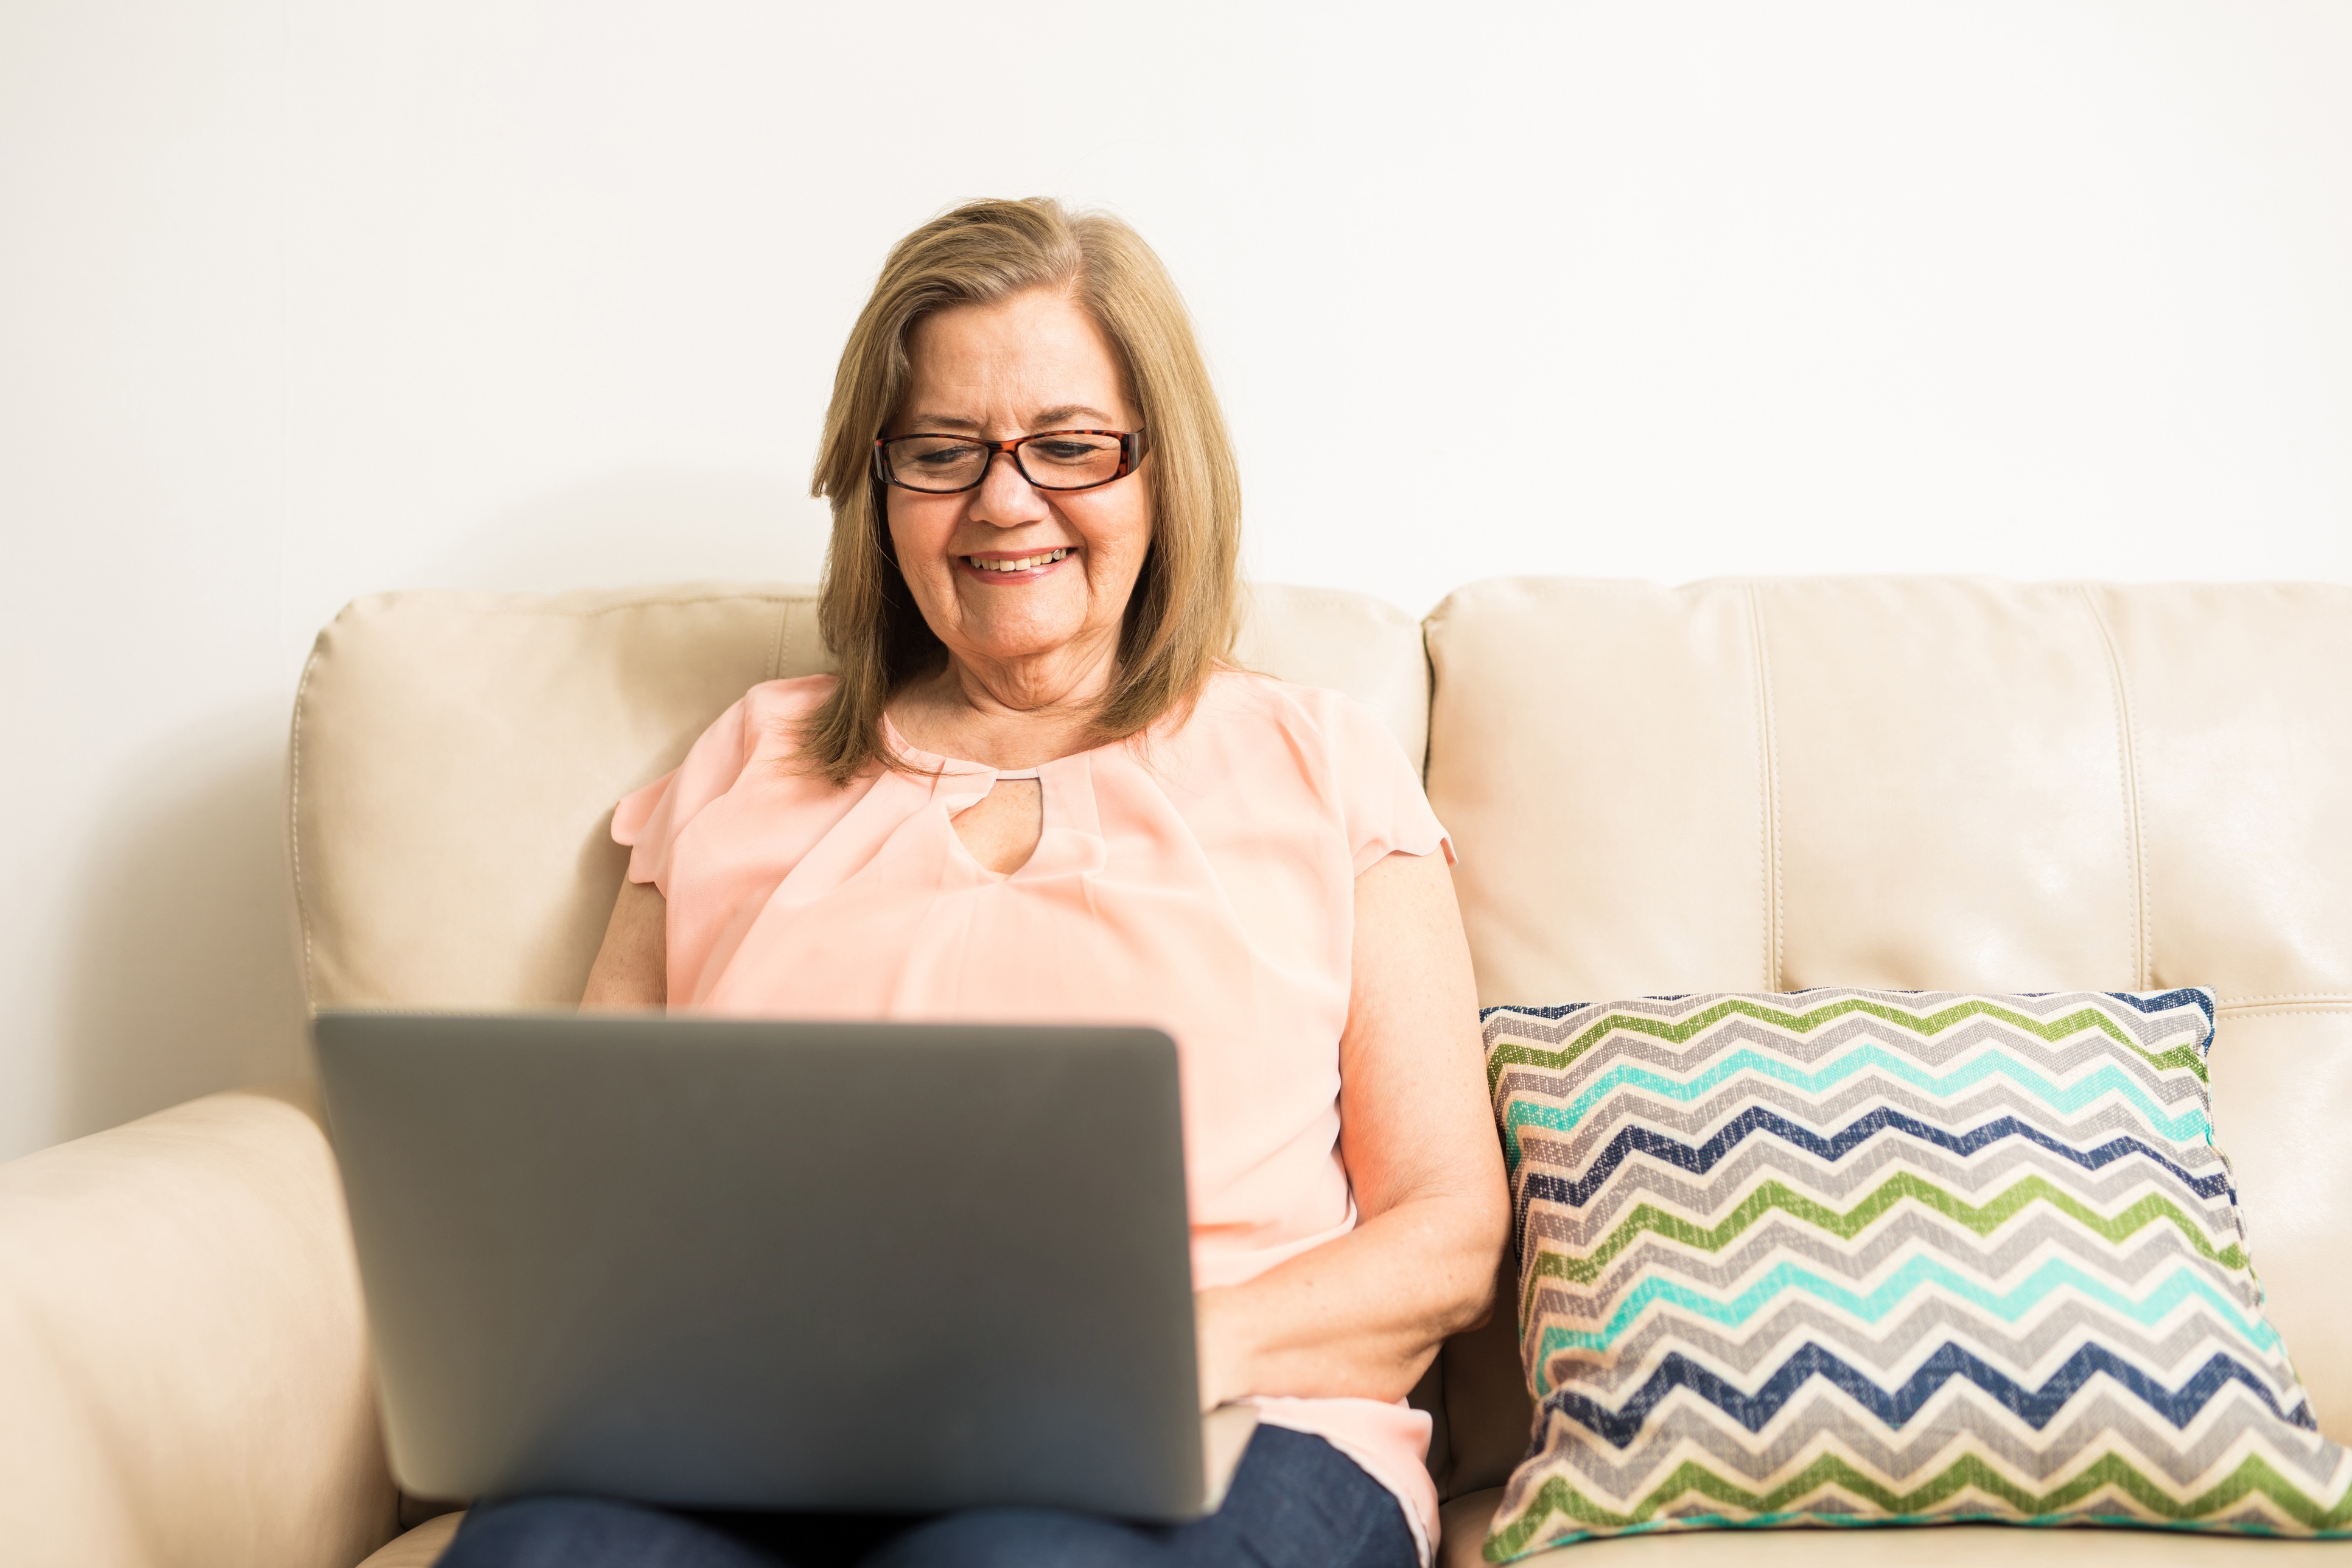 Active beautiful woman using her glasses to read from her computer on his legs in the living room